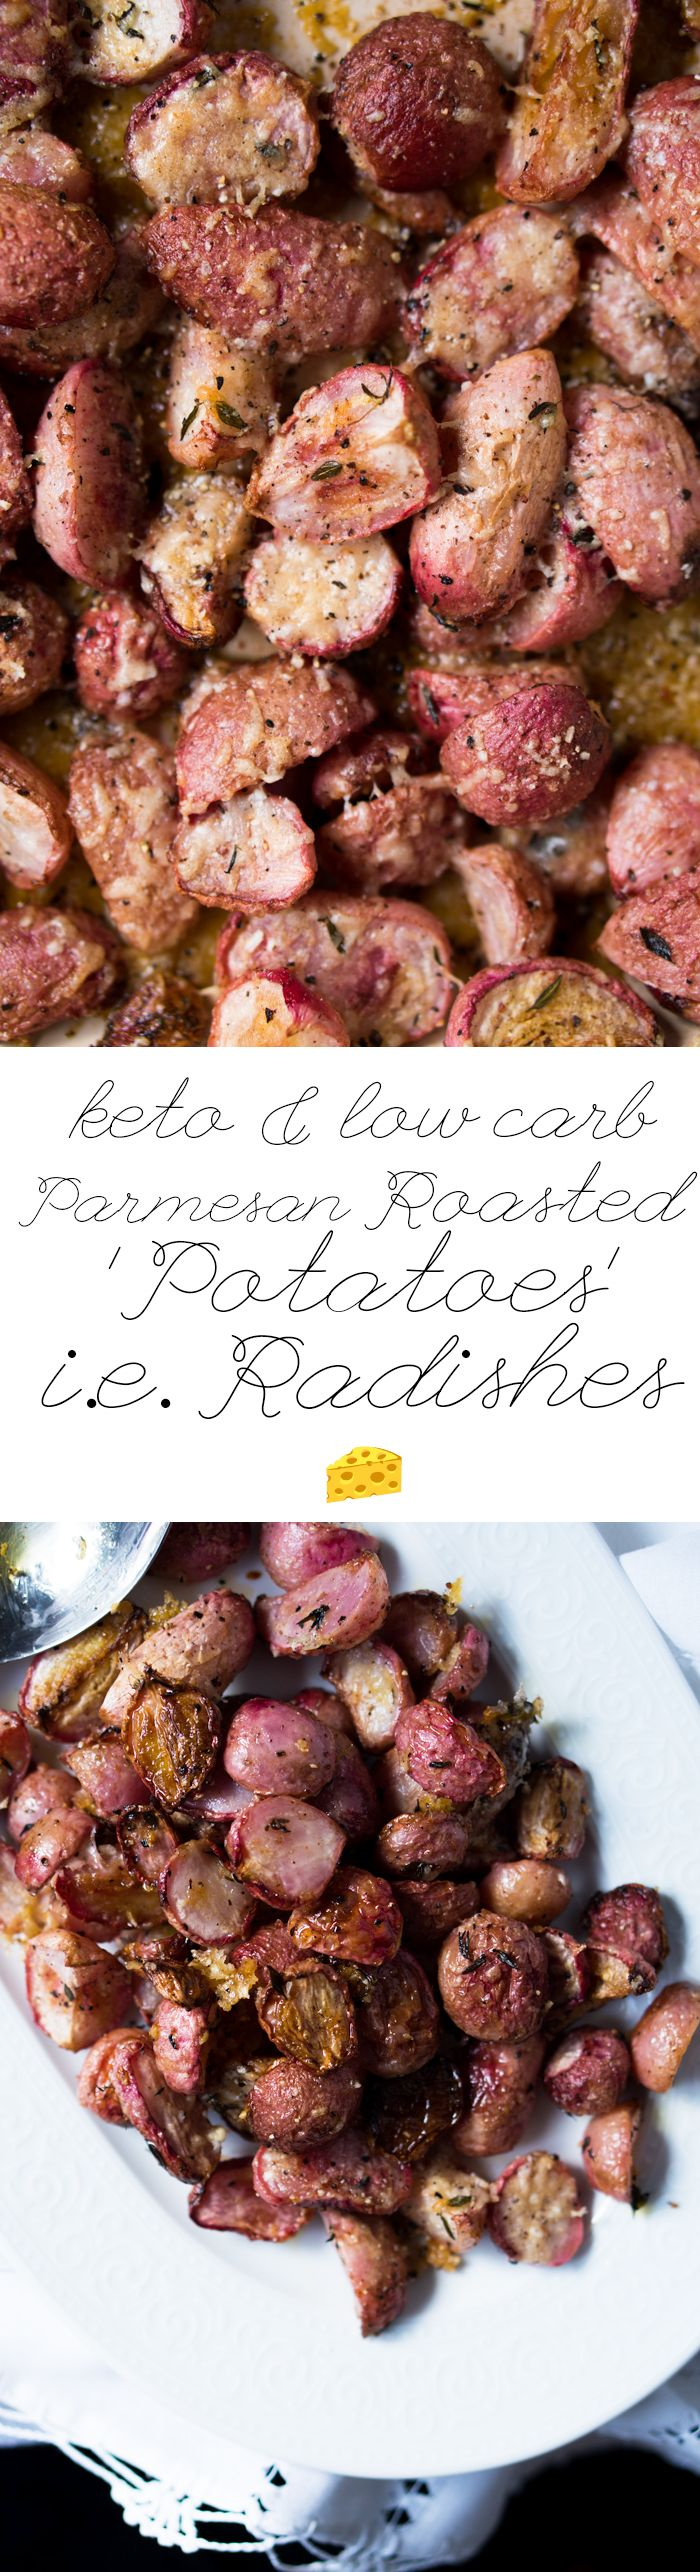 Low Carb & Keto Parmesan Roasted 'Potatoes' i.e. Radishes